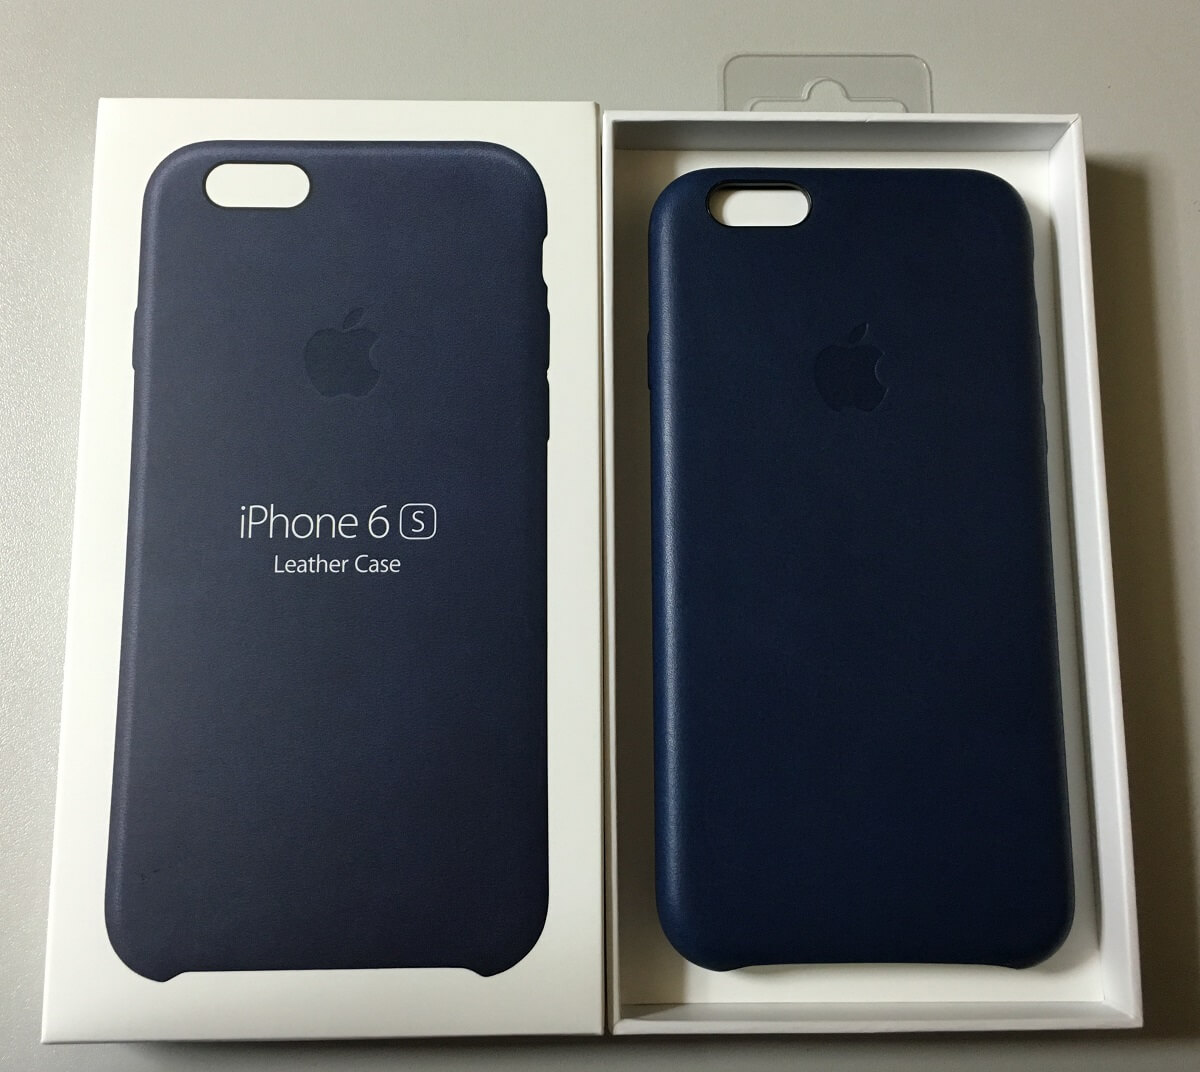 iphone6sleathercase01